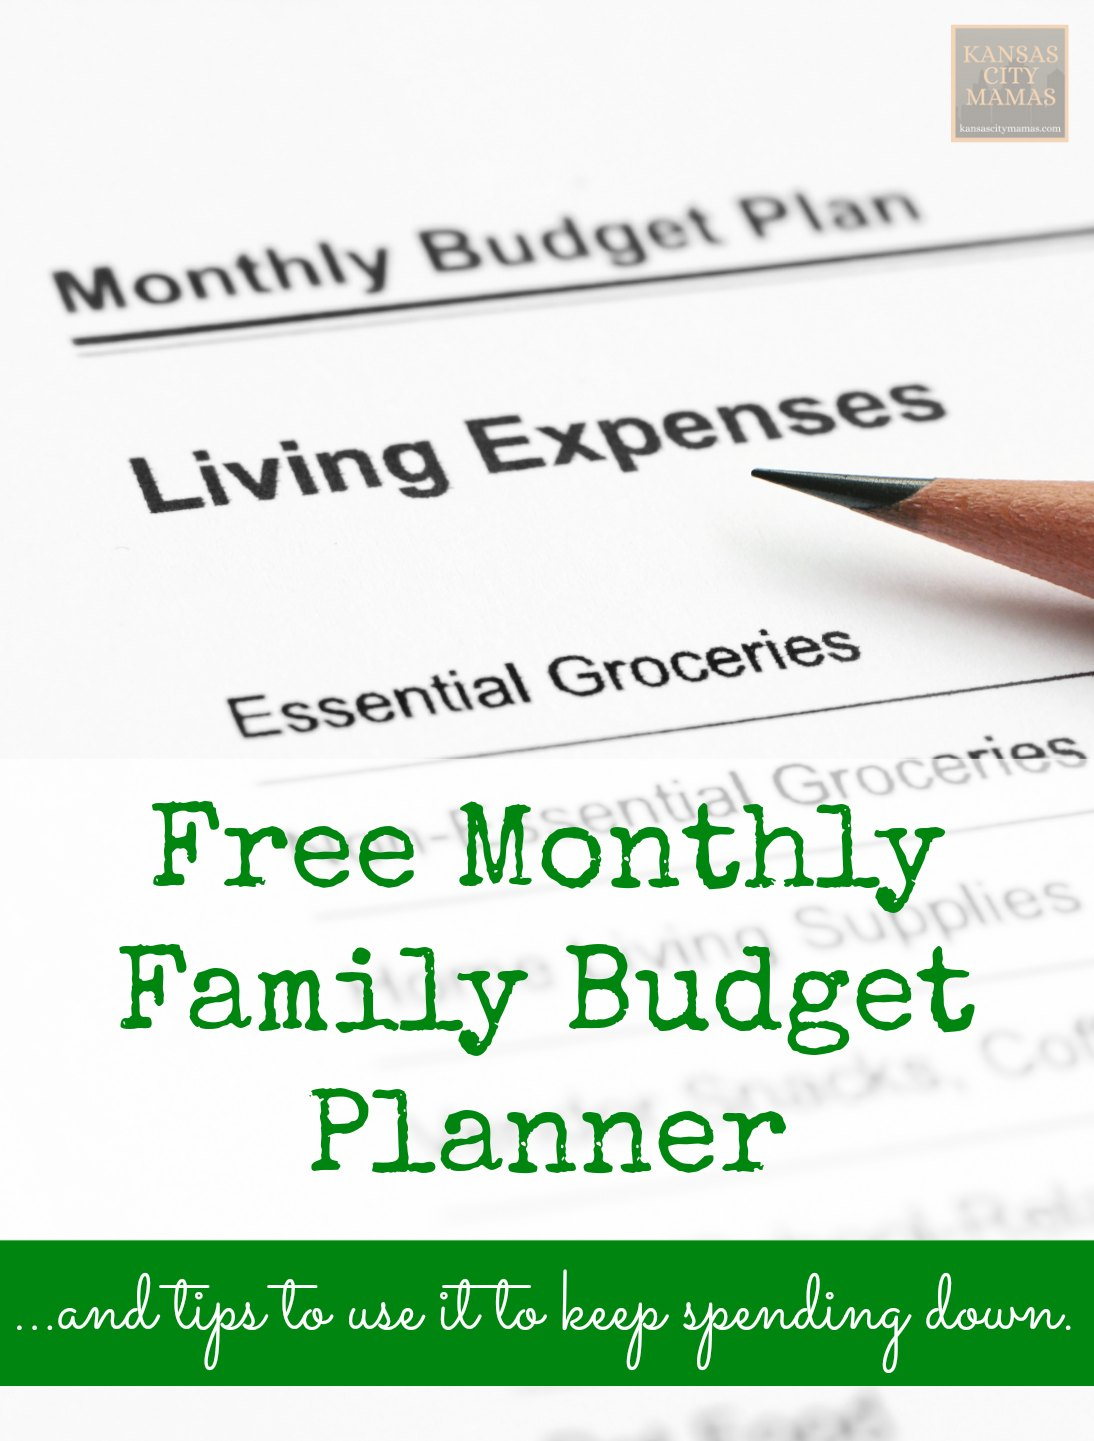 Free Monthly Family Budget Planner